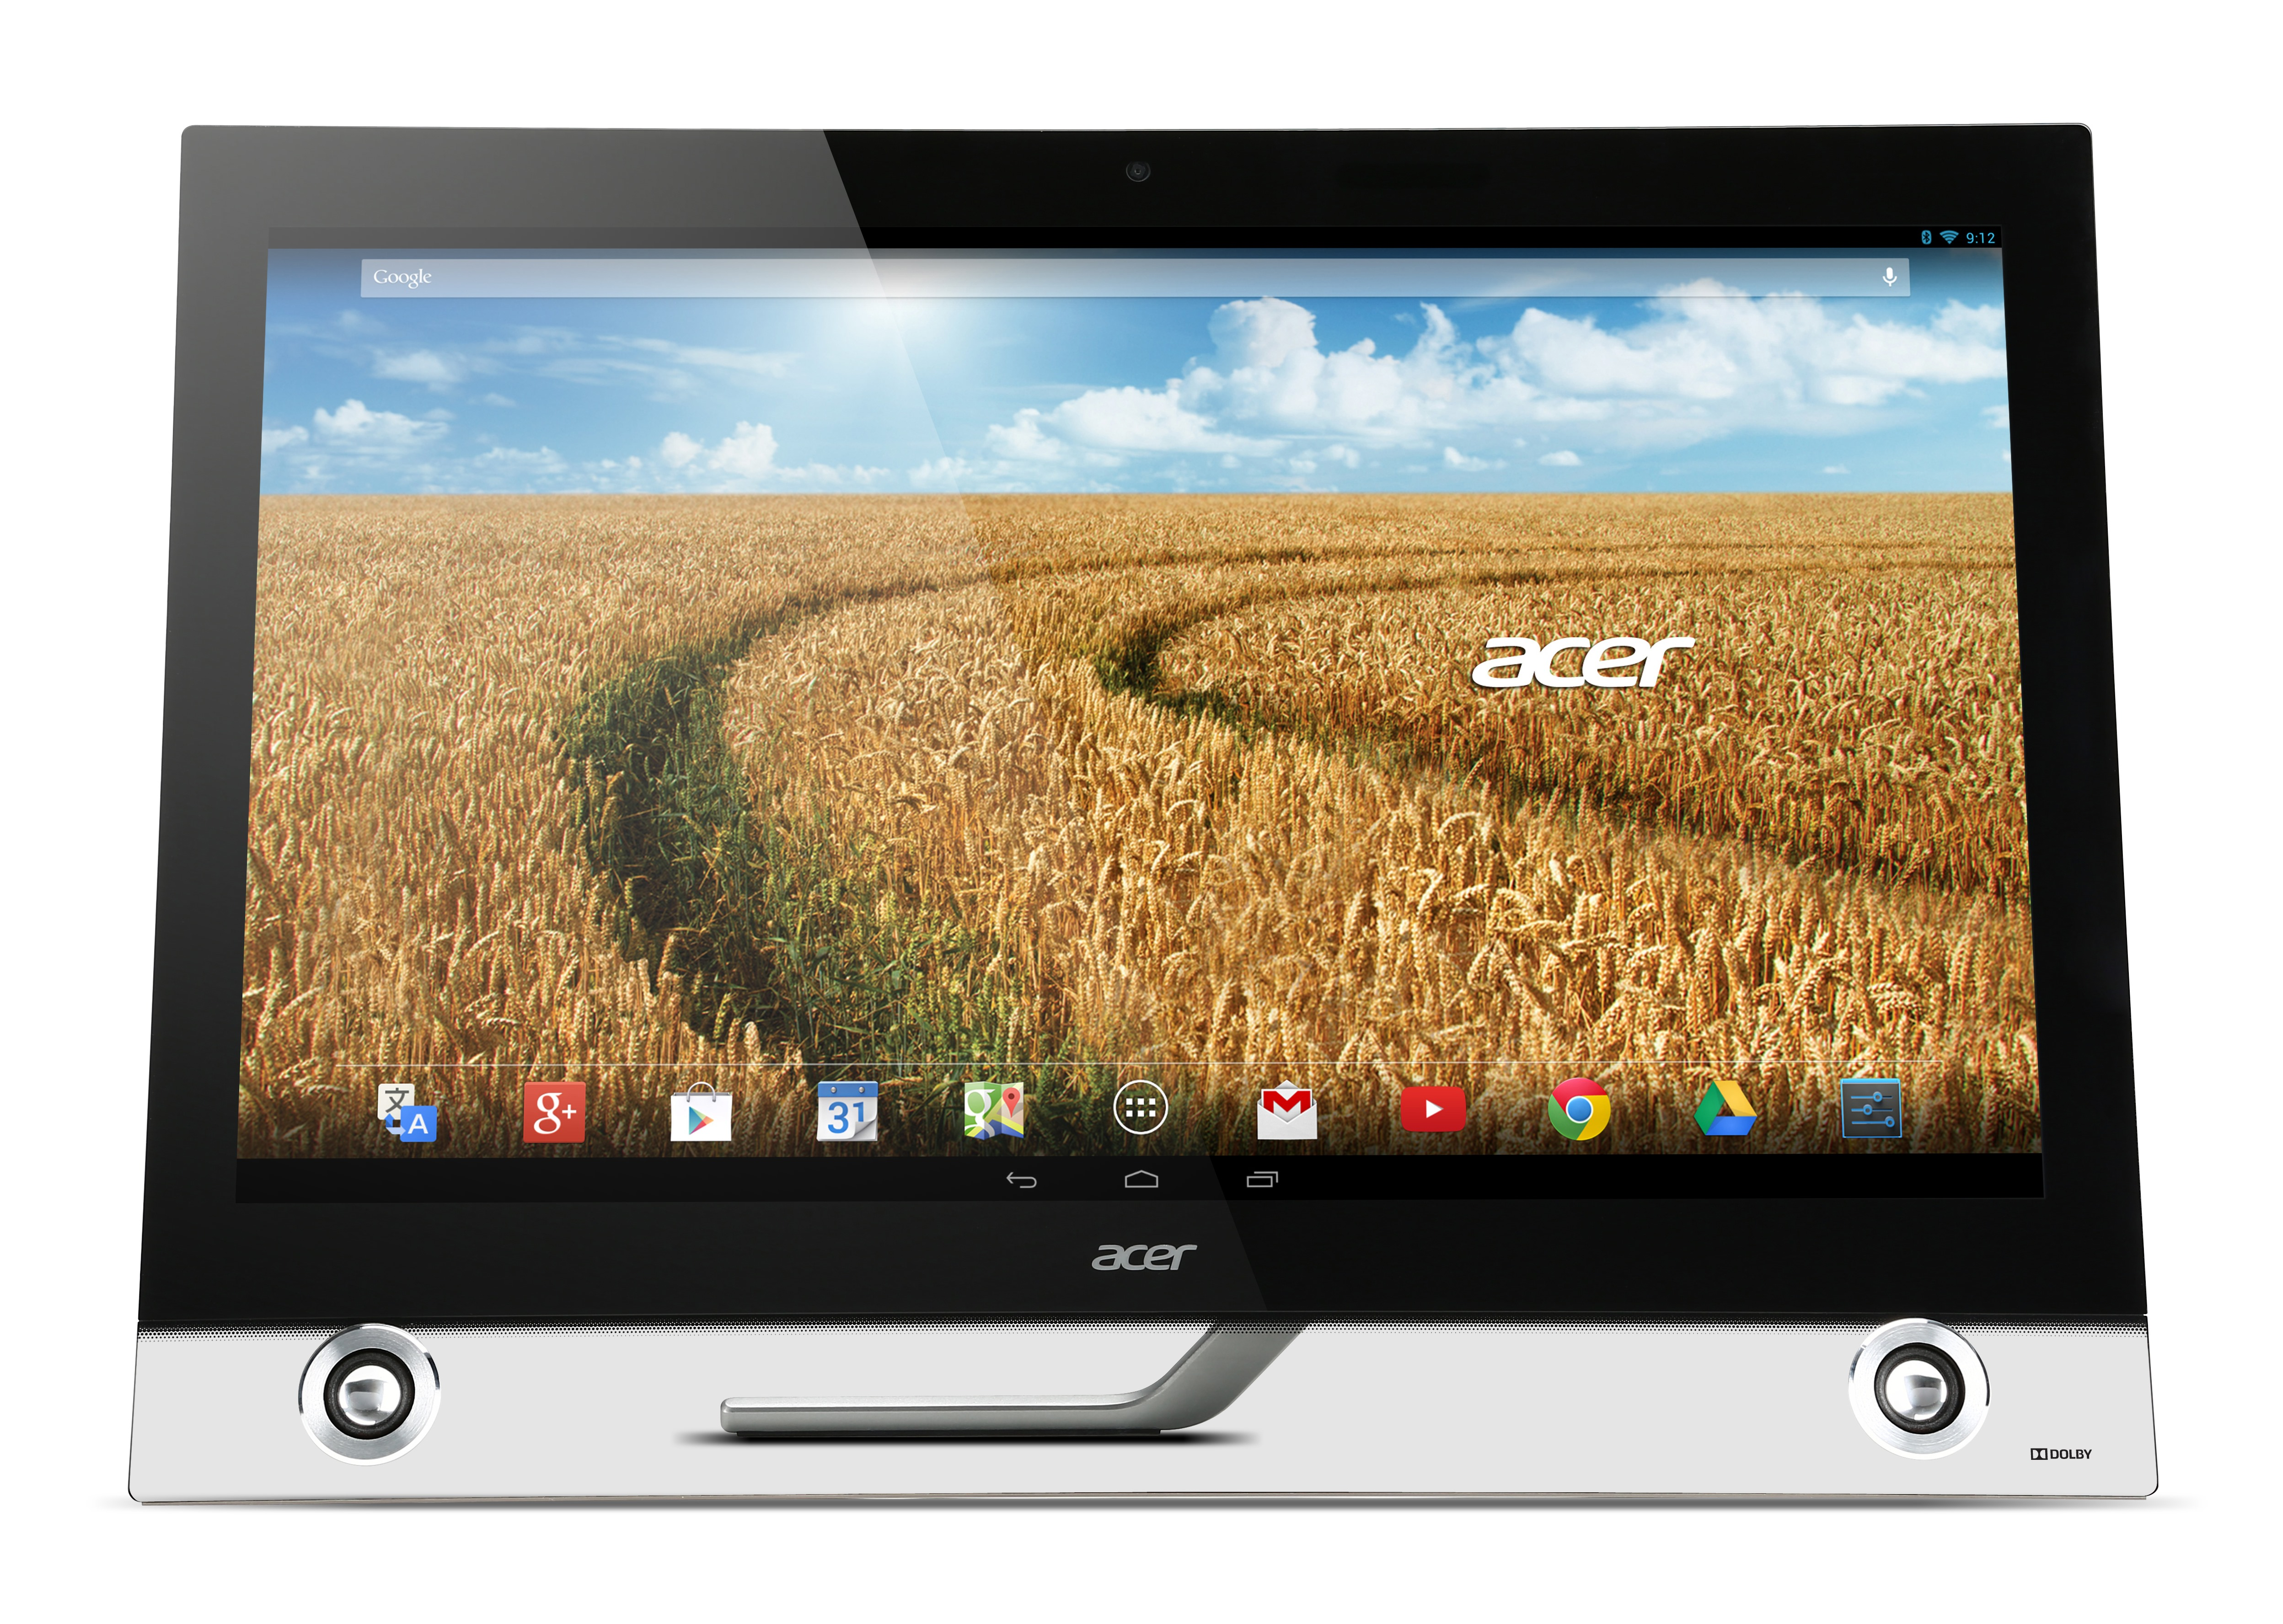 Acer Android Desktop Computer